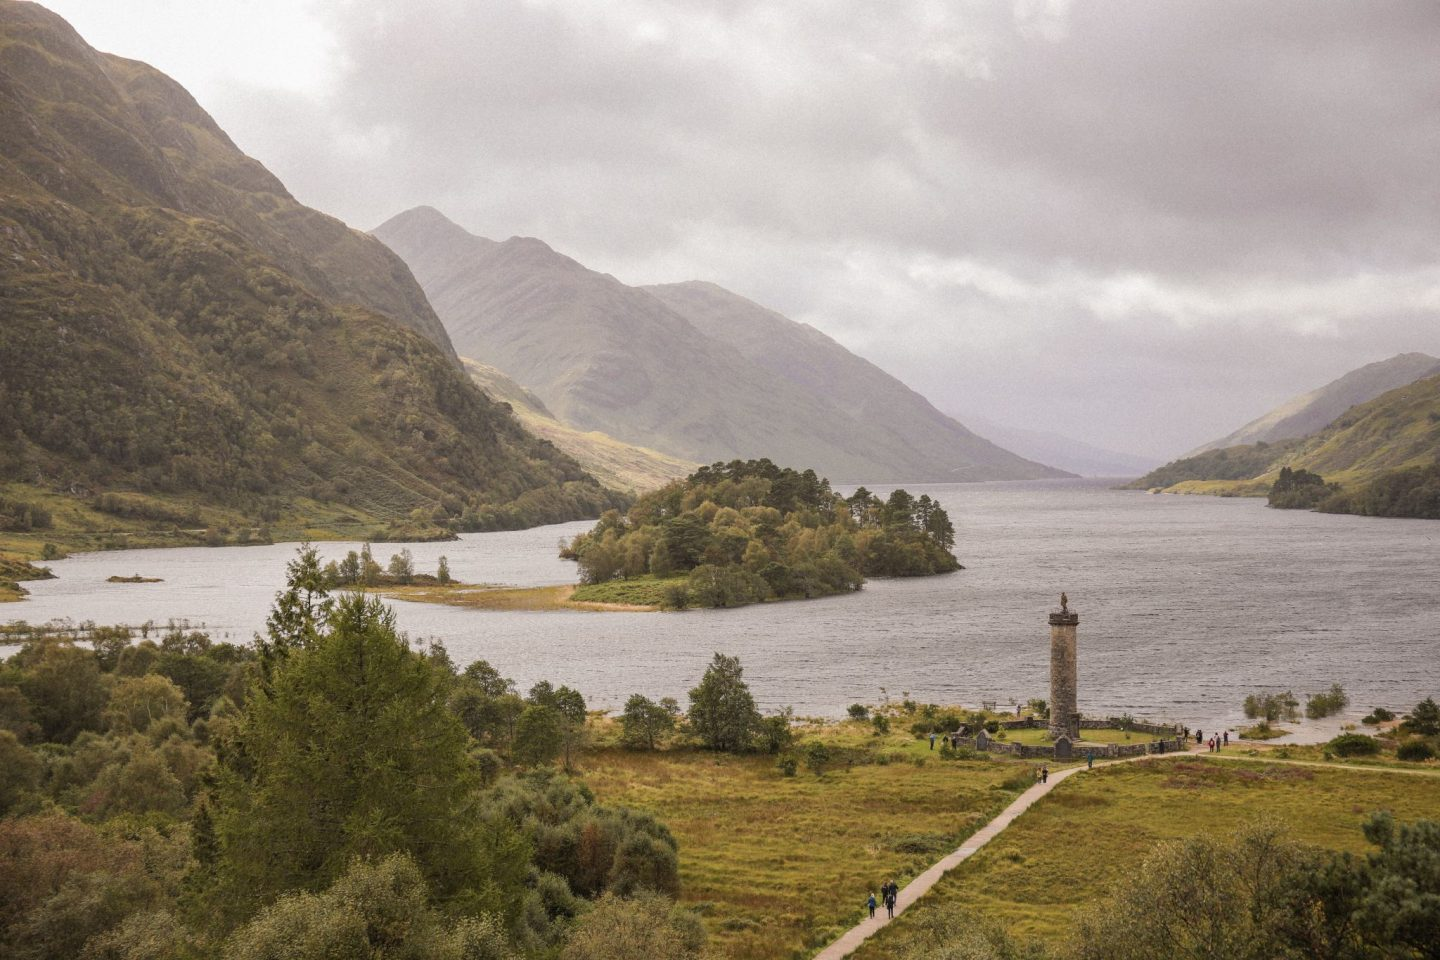 Glenfinnan Viaduct, Scotland Roadtrip, Katie Heath, KALANCHOE